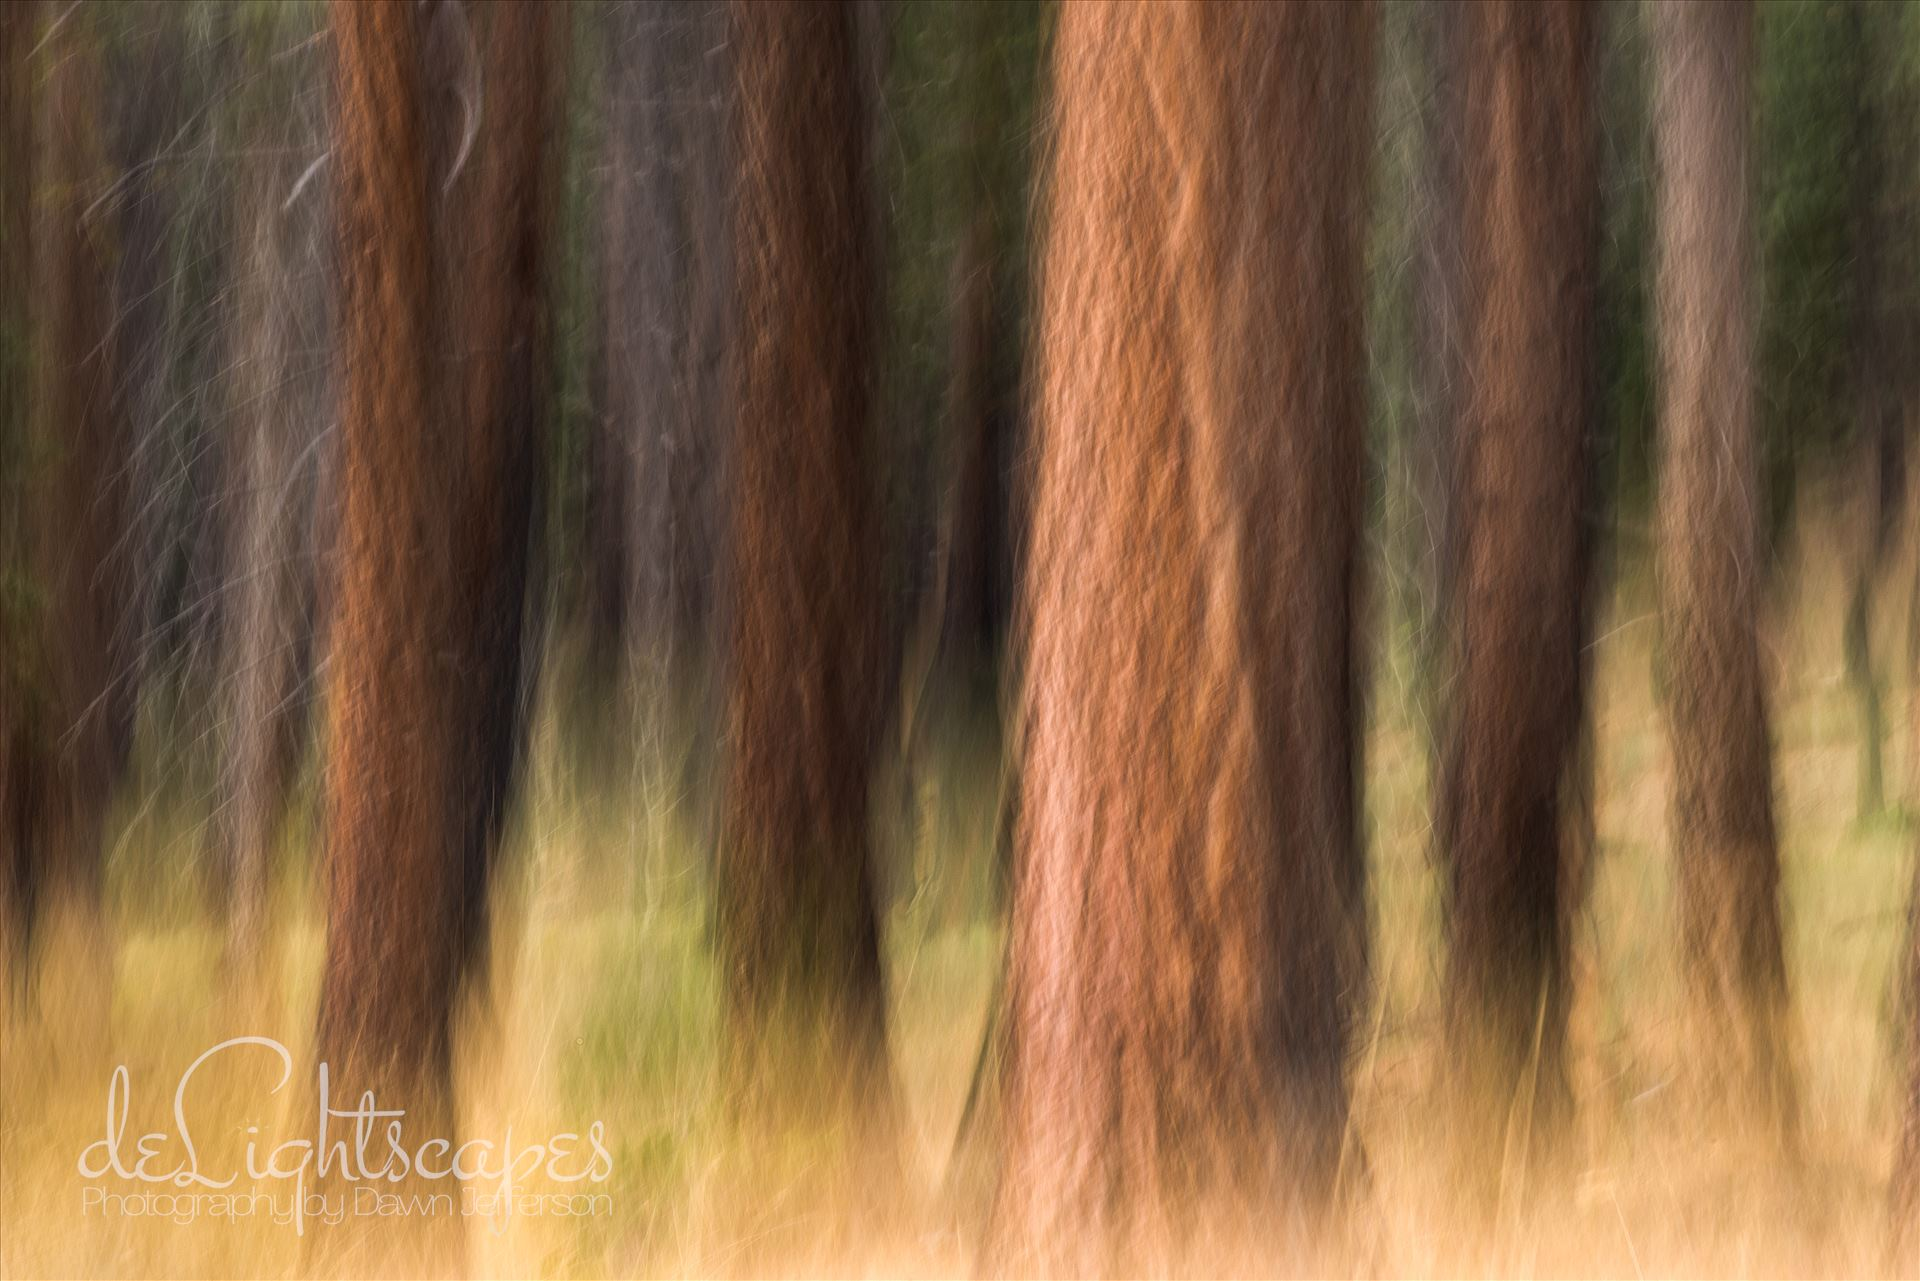 Pining - Pine trees in Tahoe using Intentional Camera Movement (ICM- purposeful movement of the camera while the shutter is open causing intentional blurring of your subject.) This is one of my favorite techniques for making dreamy abstracts. by Dawn Jefferson